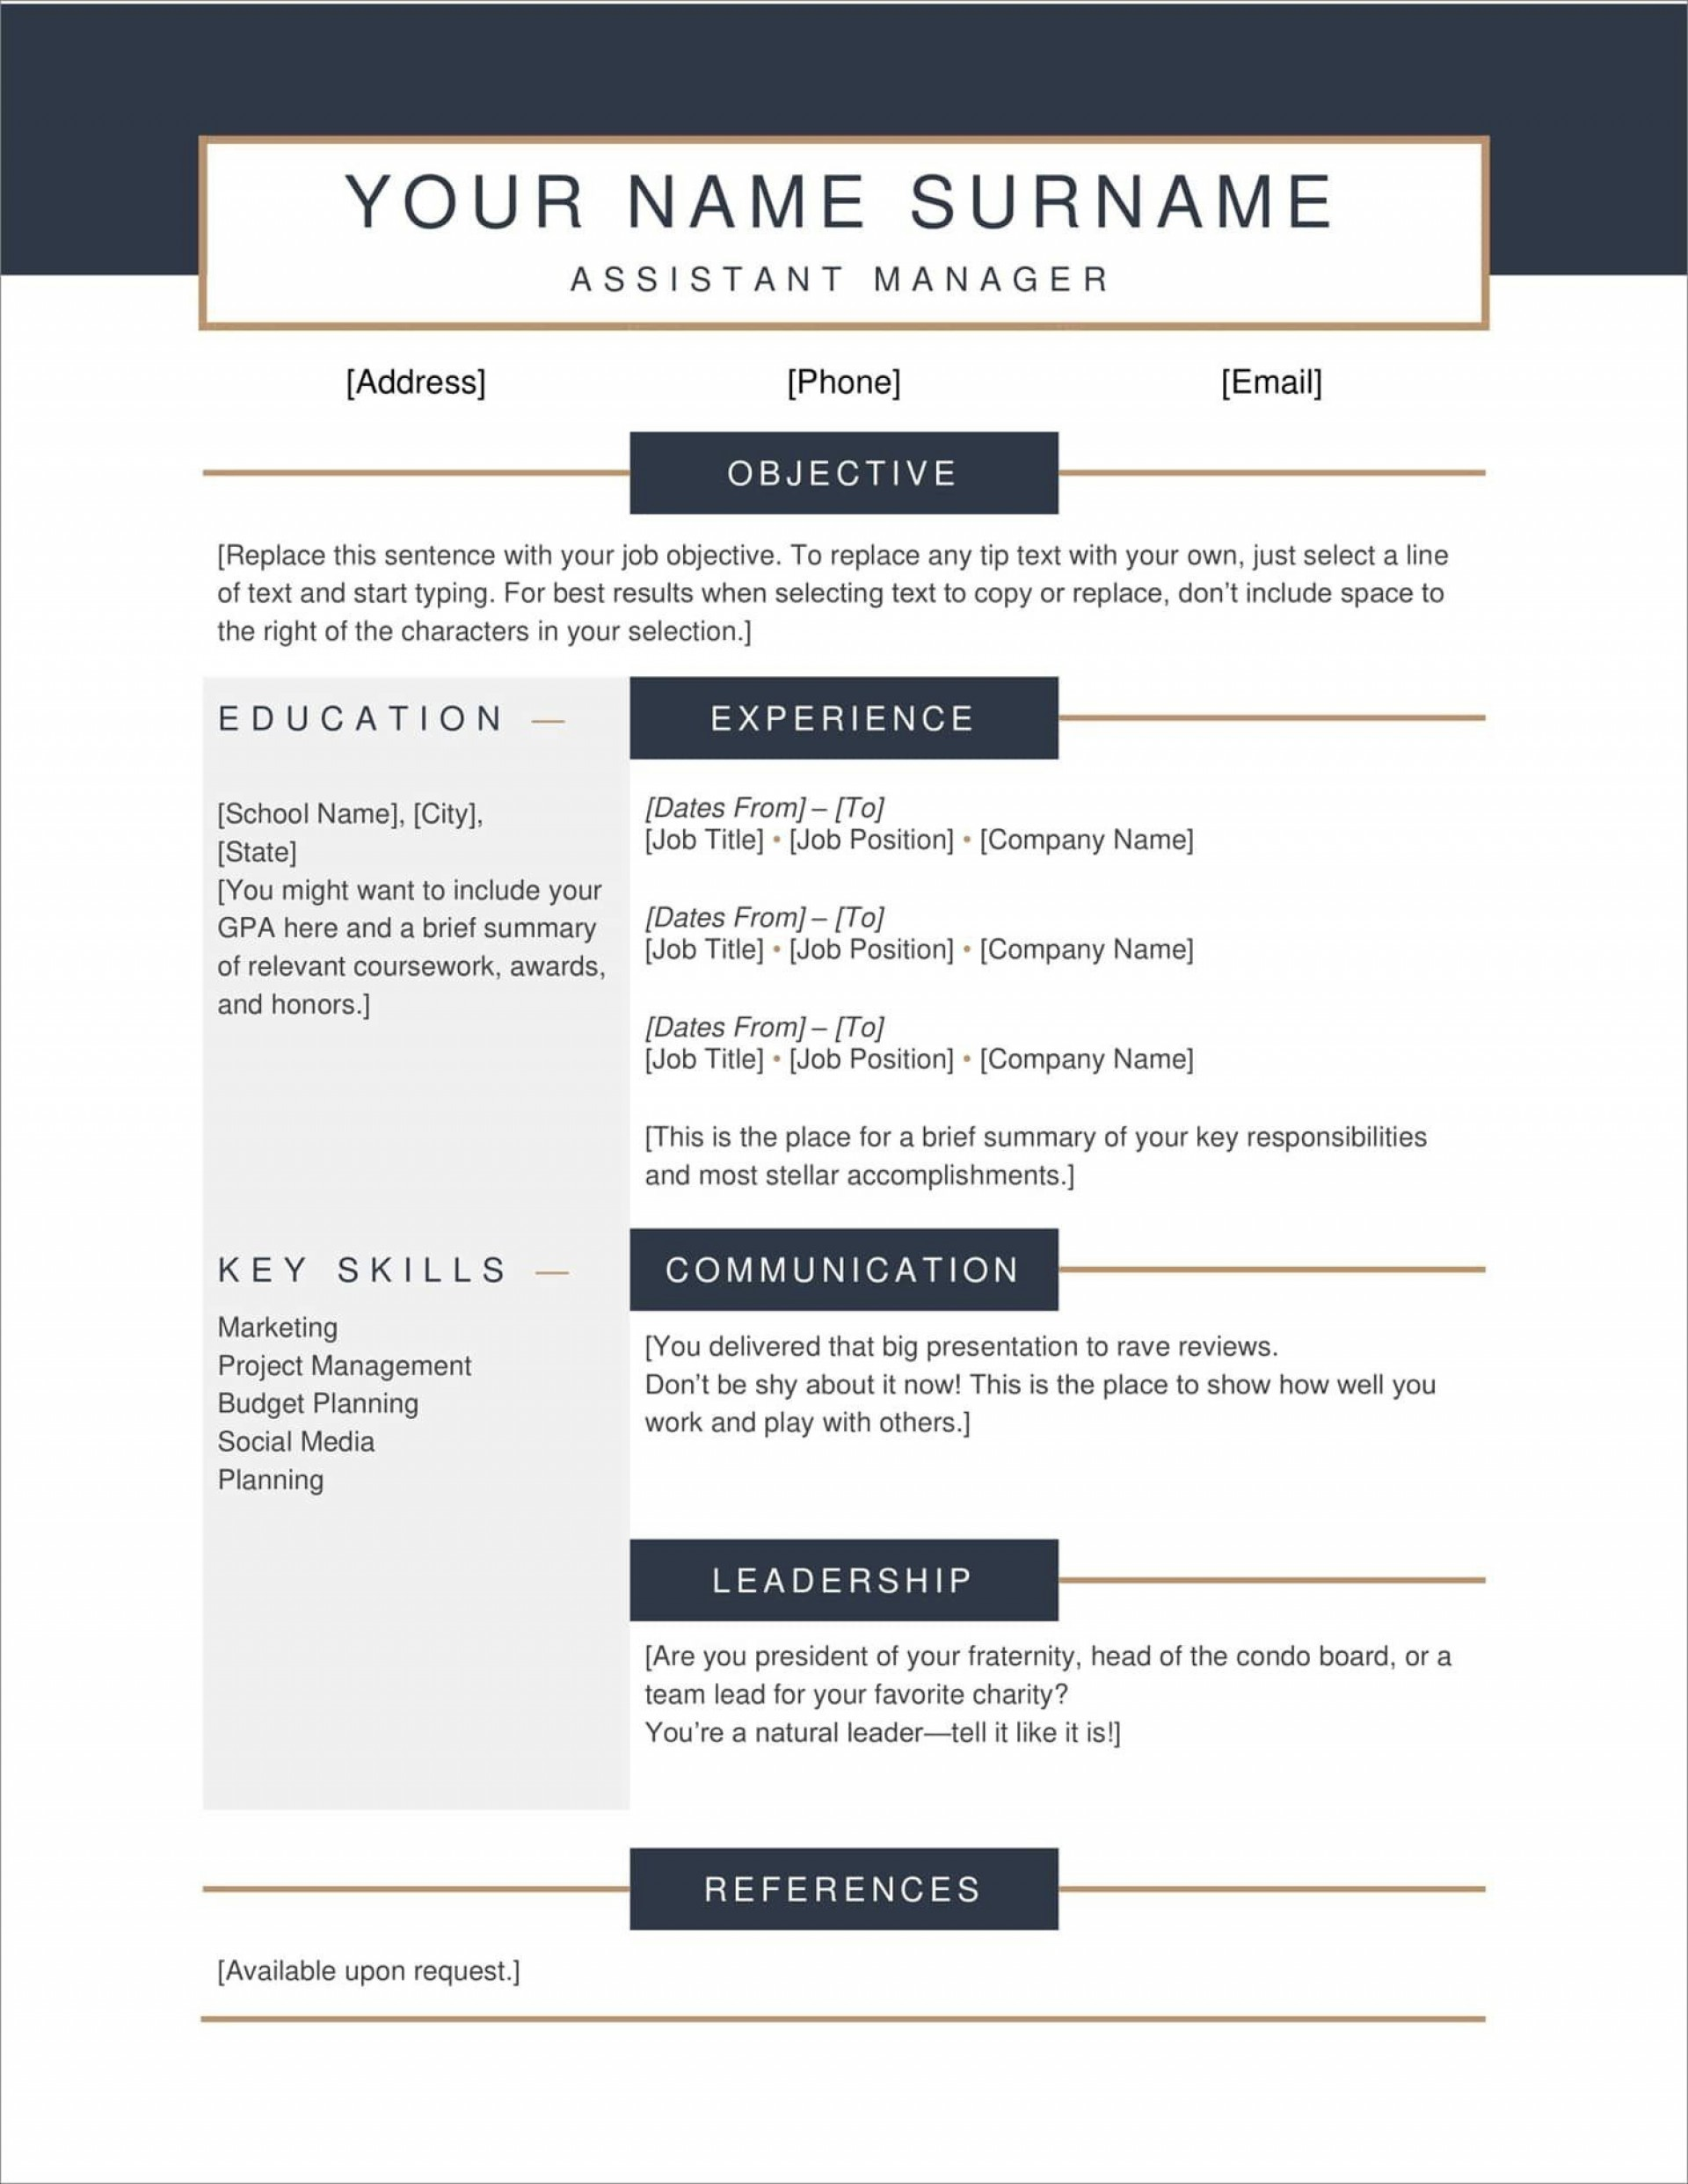 004 Marvelou Resume Template For Free Concept  Best Word Freelance Writer Microsoft1920